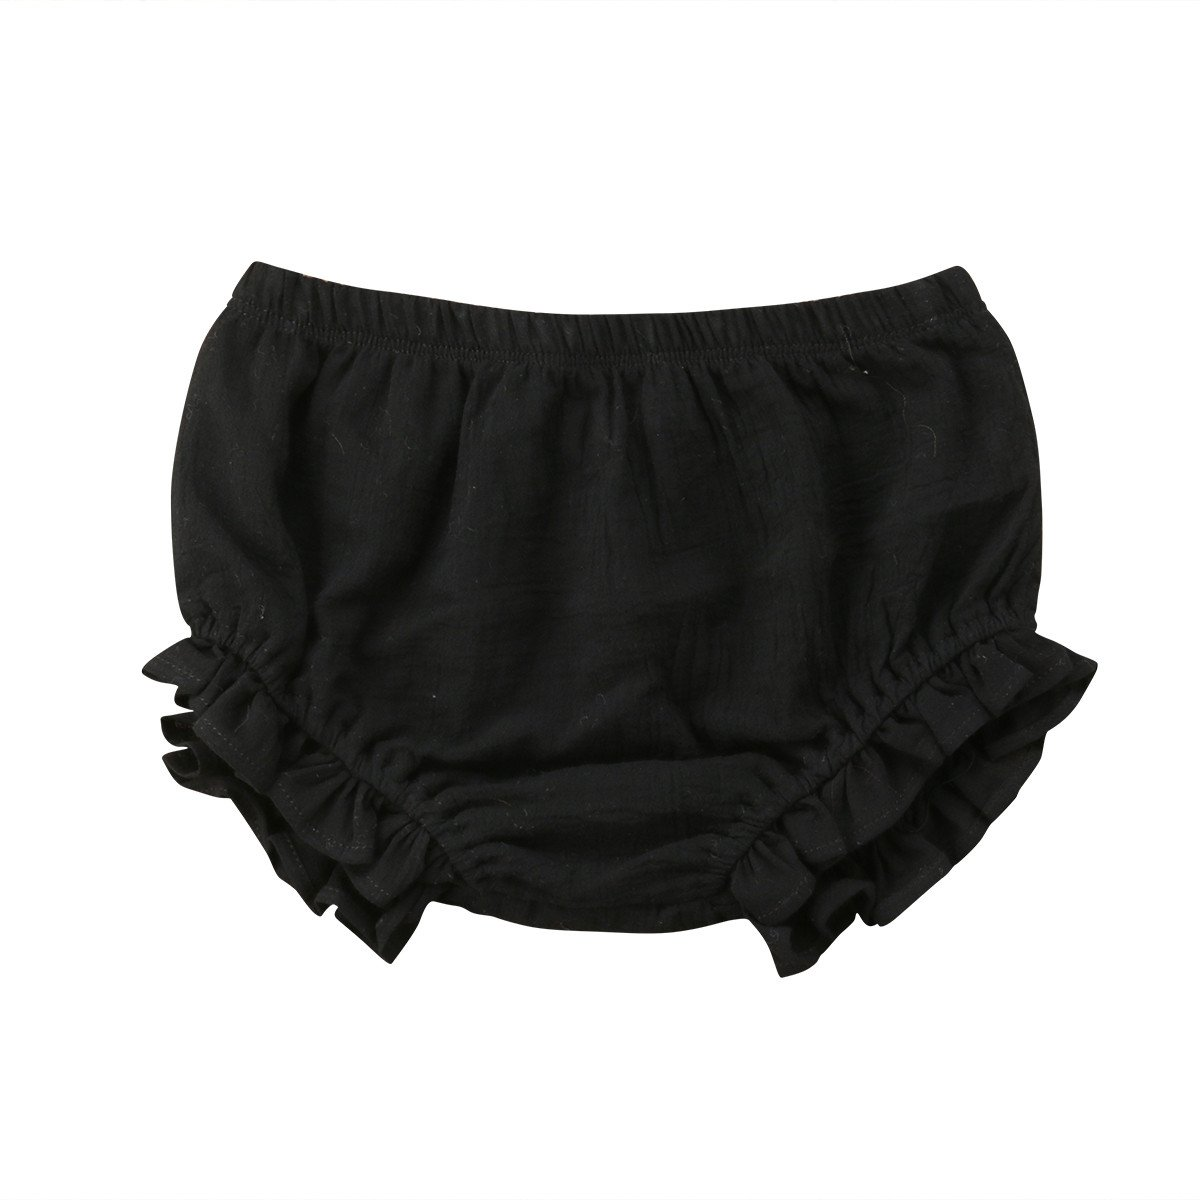 4c7c1e198f37 Amazon.com: Mornbaby Baby Girl's Bloomers Cotton Ruffle Panty Diaper Covers  Underwear Shorts Toddler Kids Girls: Clothing